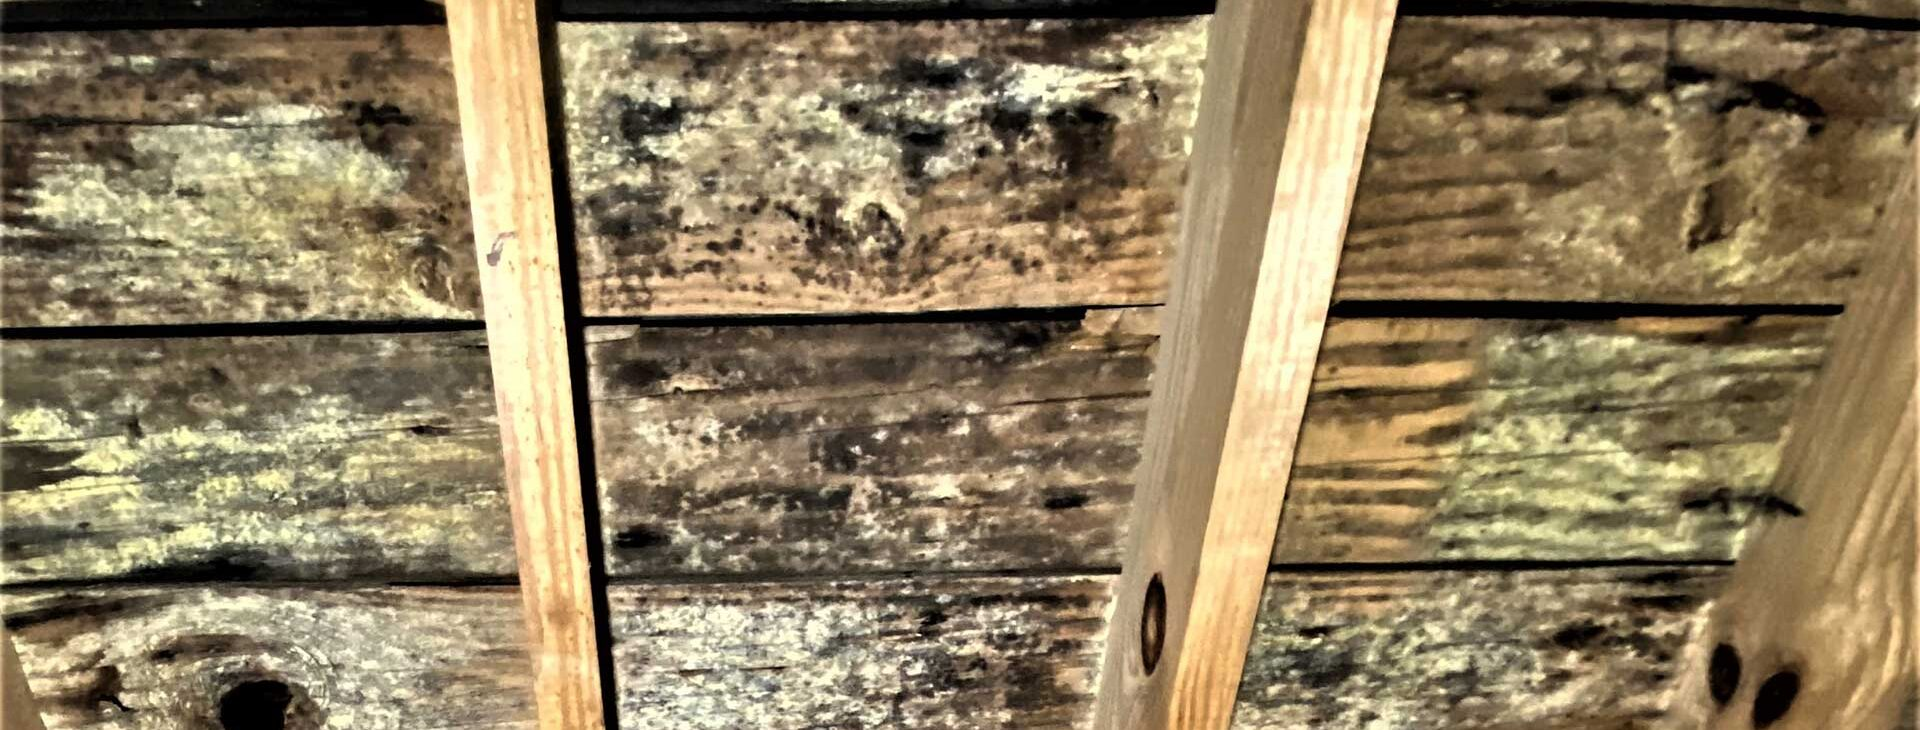 Before Attic Mold Remediation